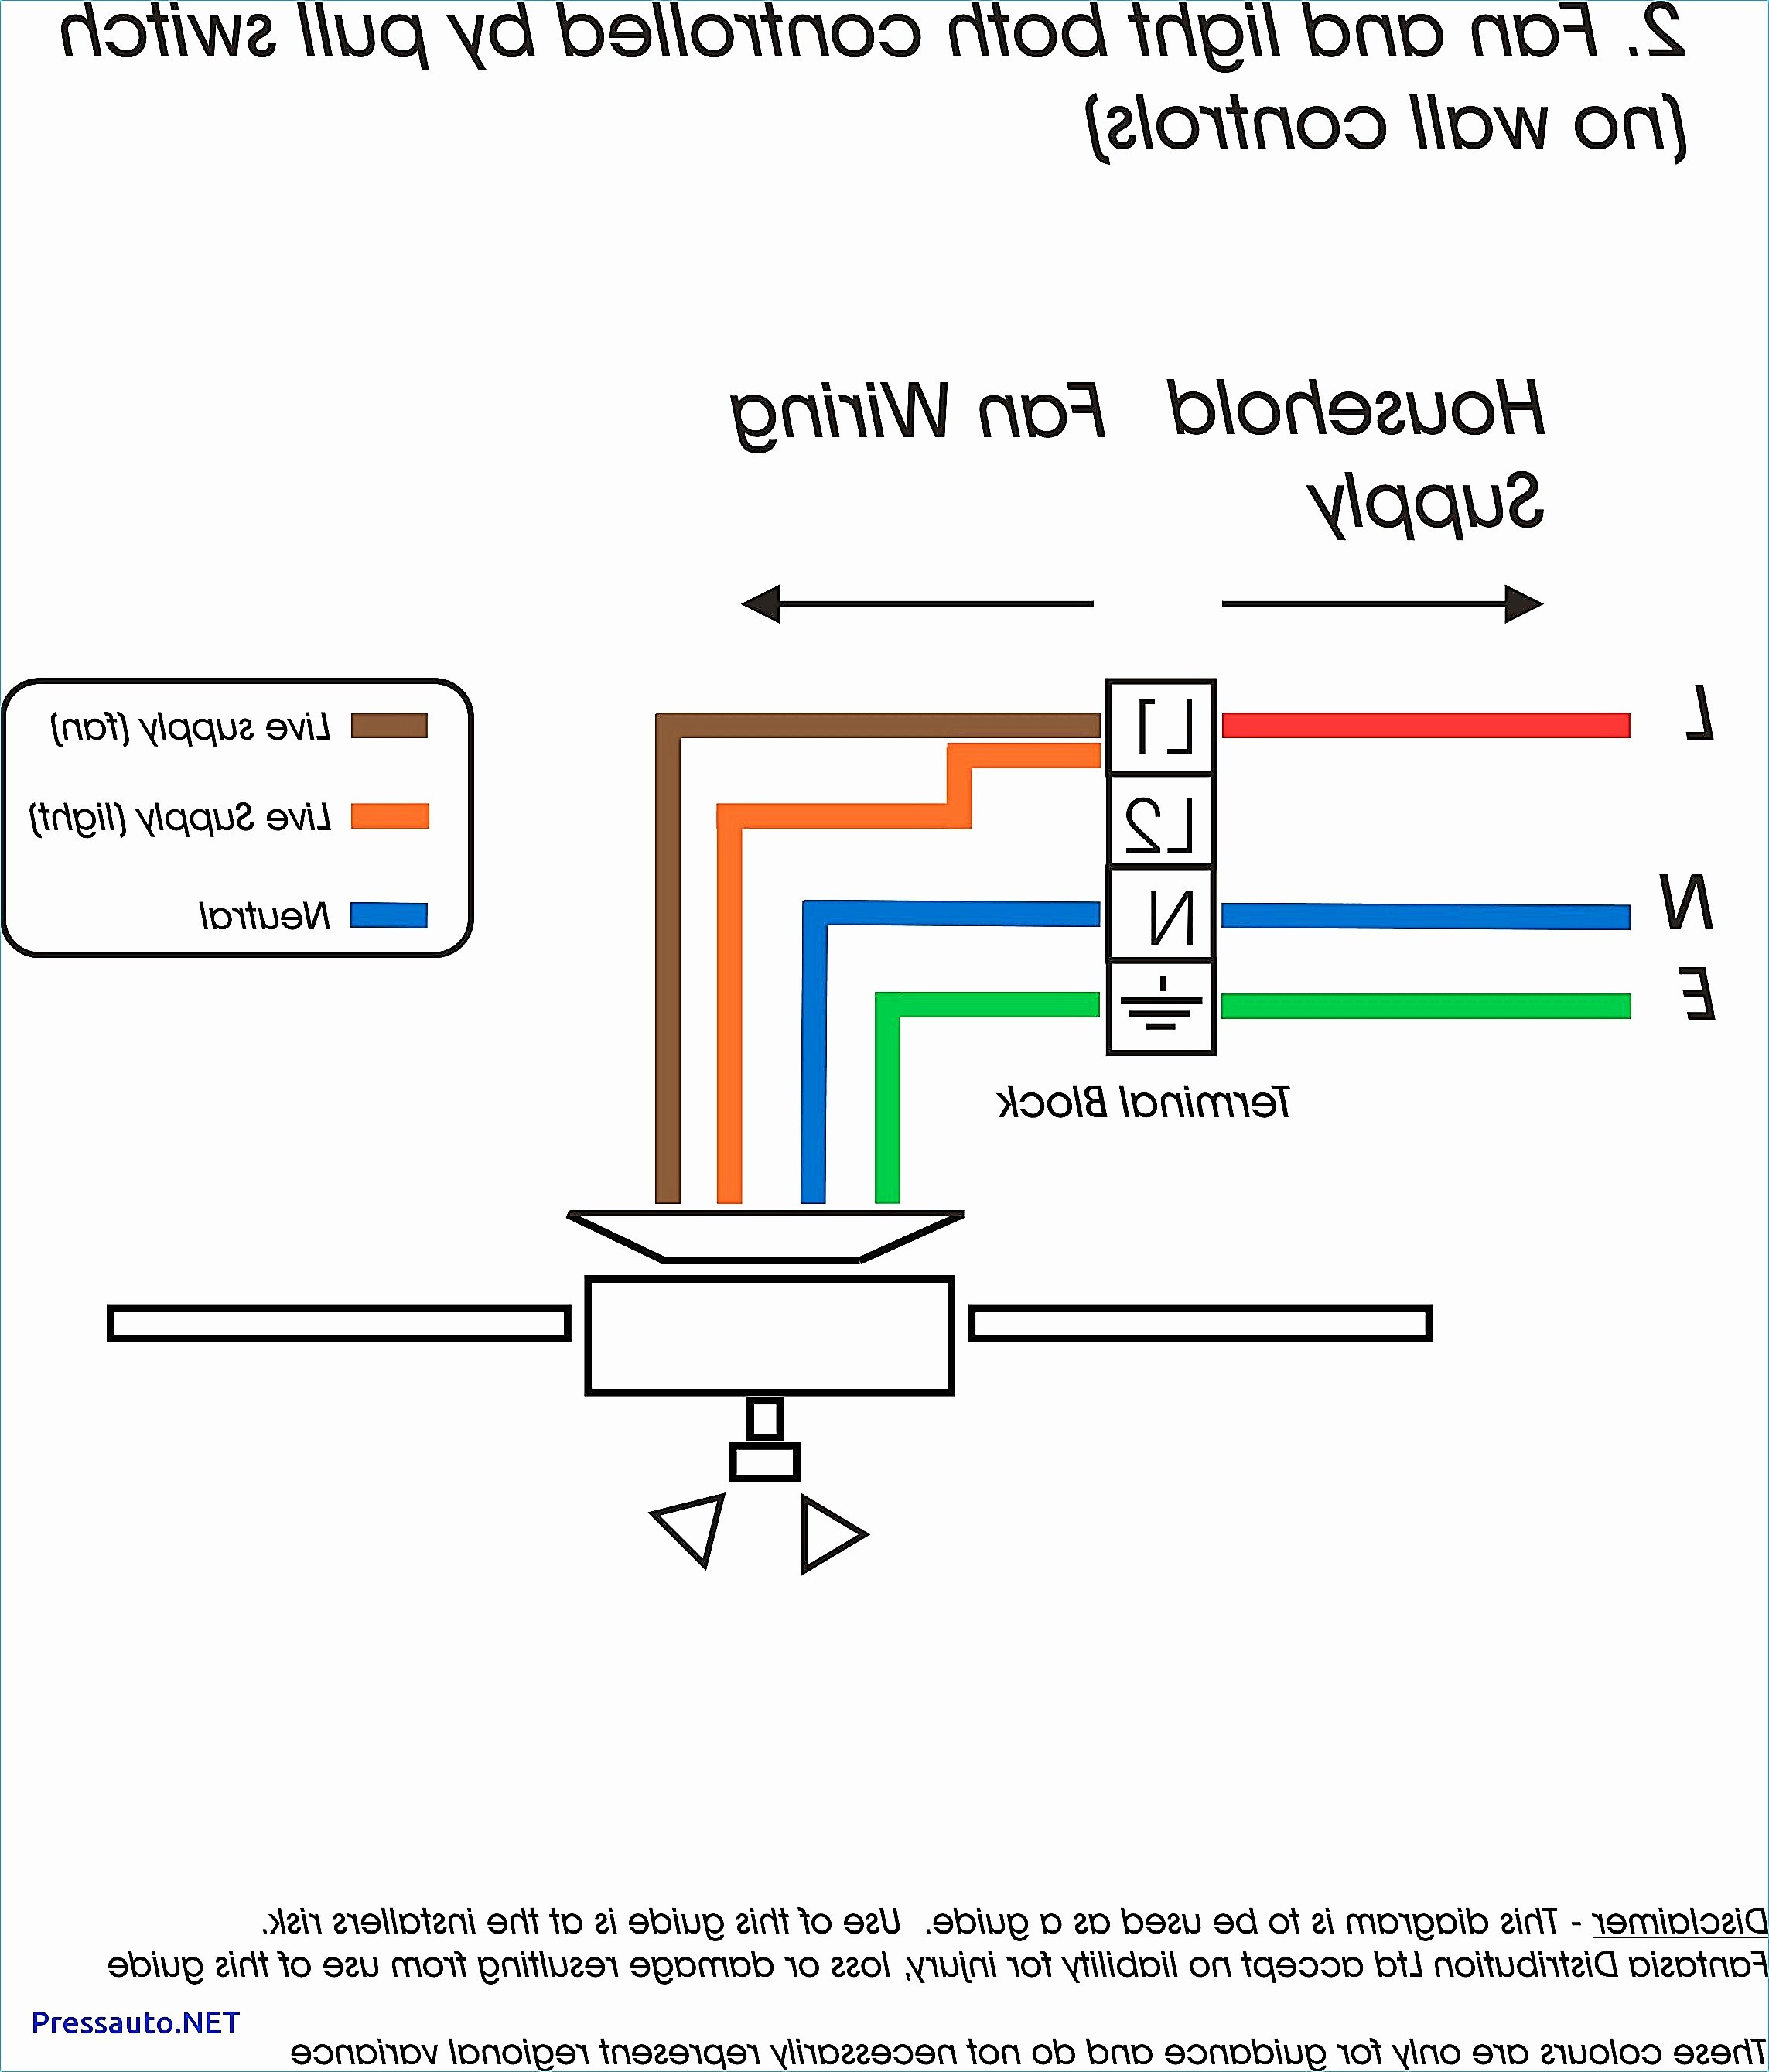 cat5 crossover cable wiring diagram Download-Wiring Diagram For Cat5 Crossover Cable Best Wiring Diagram For A Ethernet Switch Inspirationa Ethernet Switch 9-p